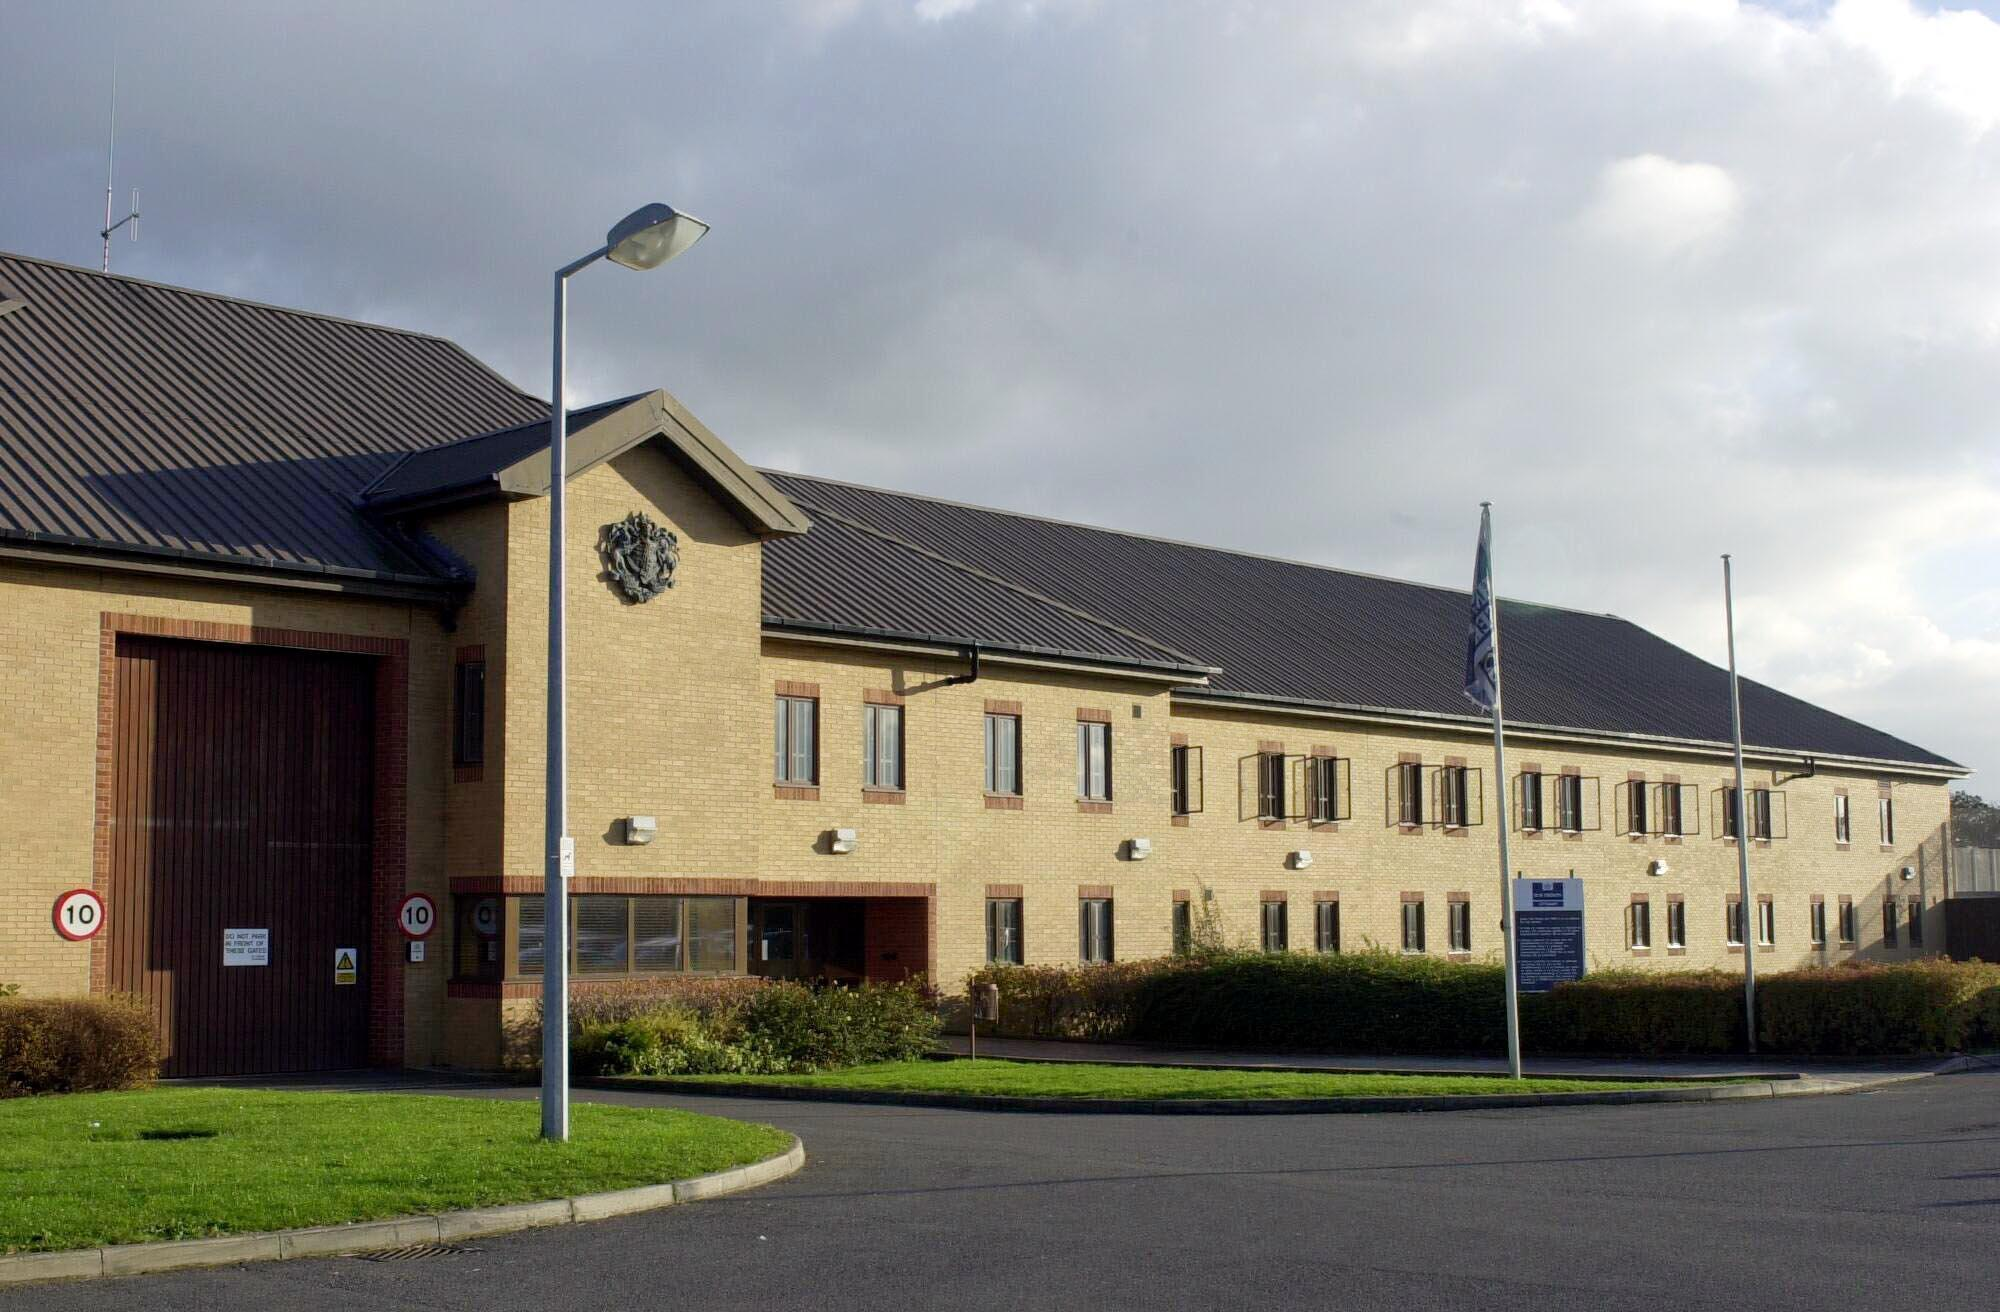 Female prison guard 'seriously assaulted' in male sex offender prison HMP Littlehey